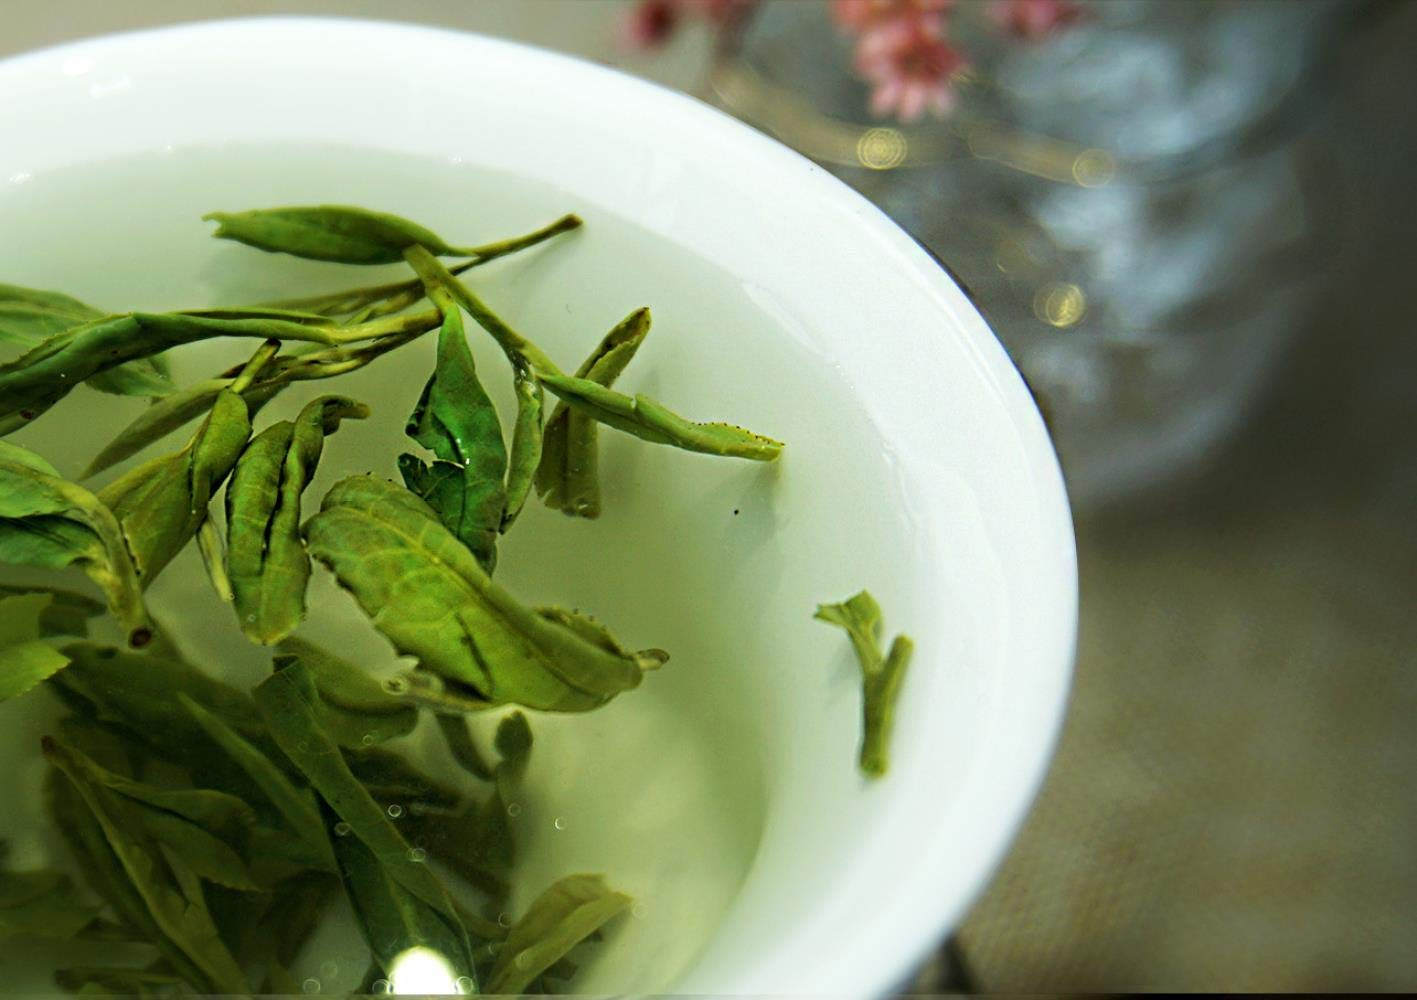 Longjing Green Tea, West Lake, Longjing , Tea after rain